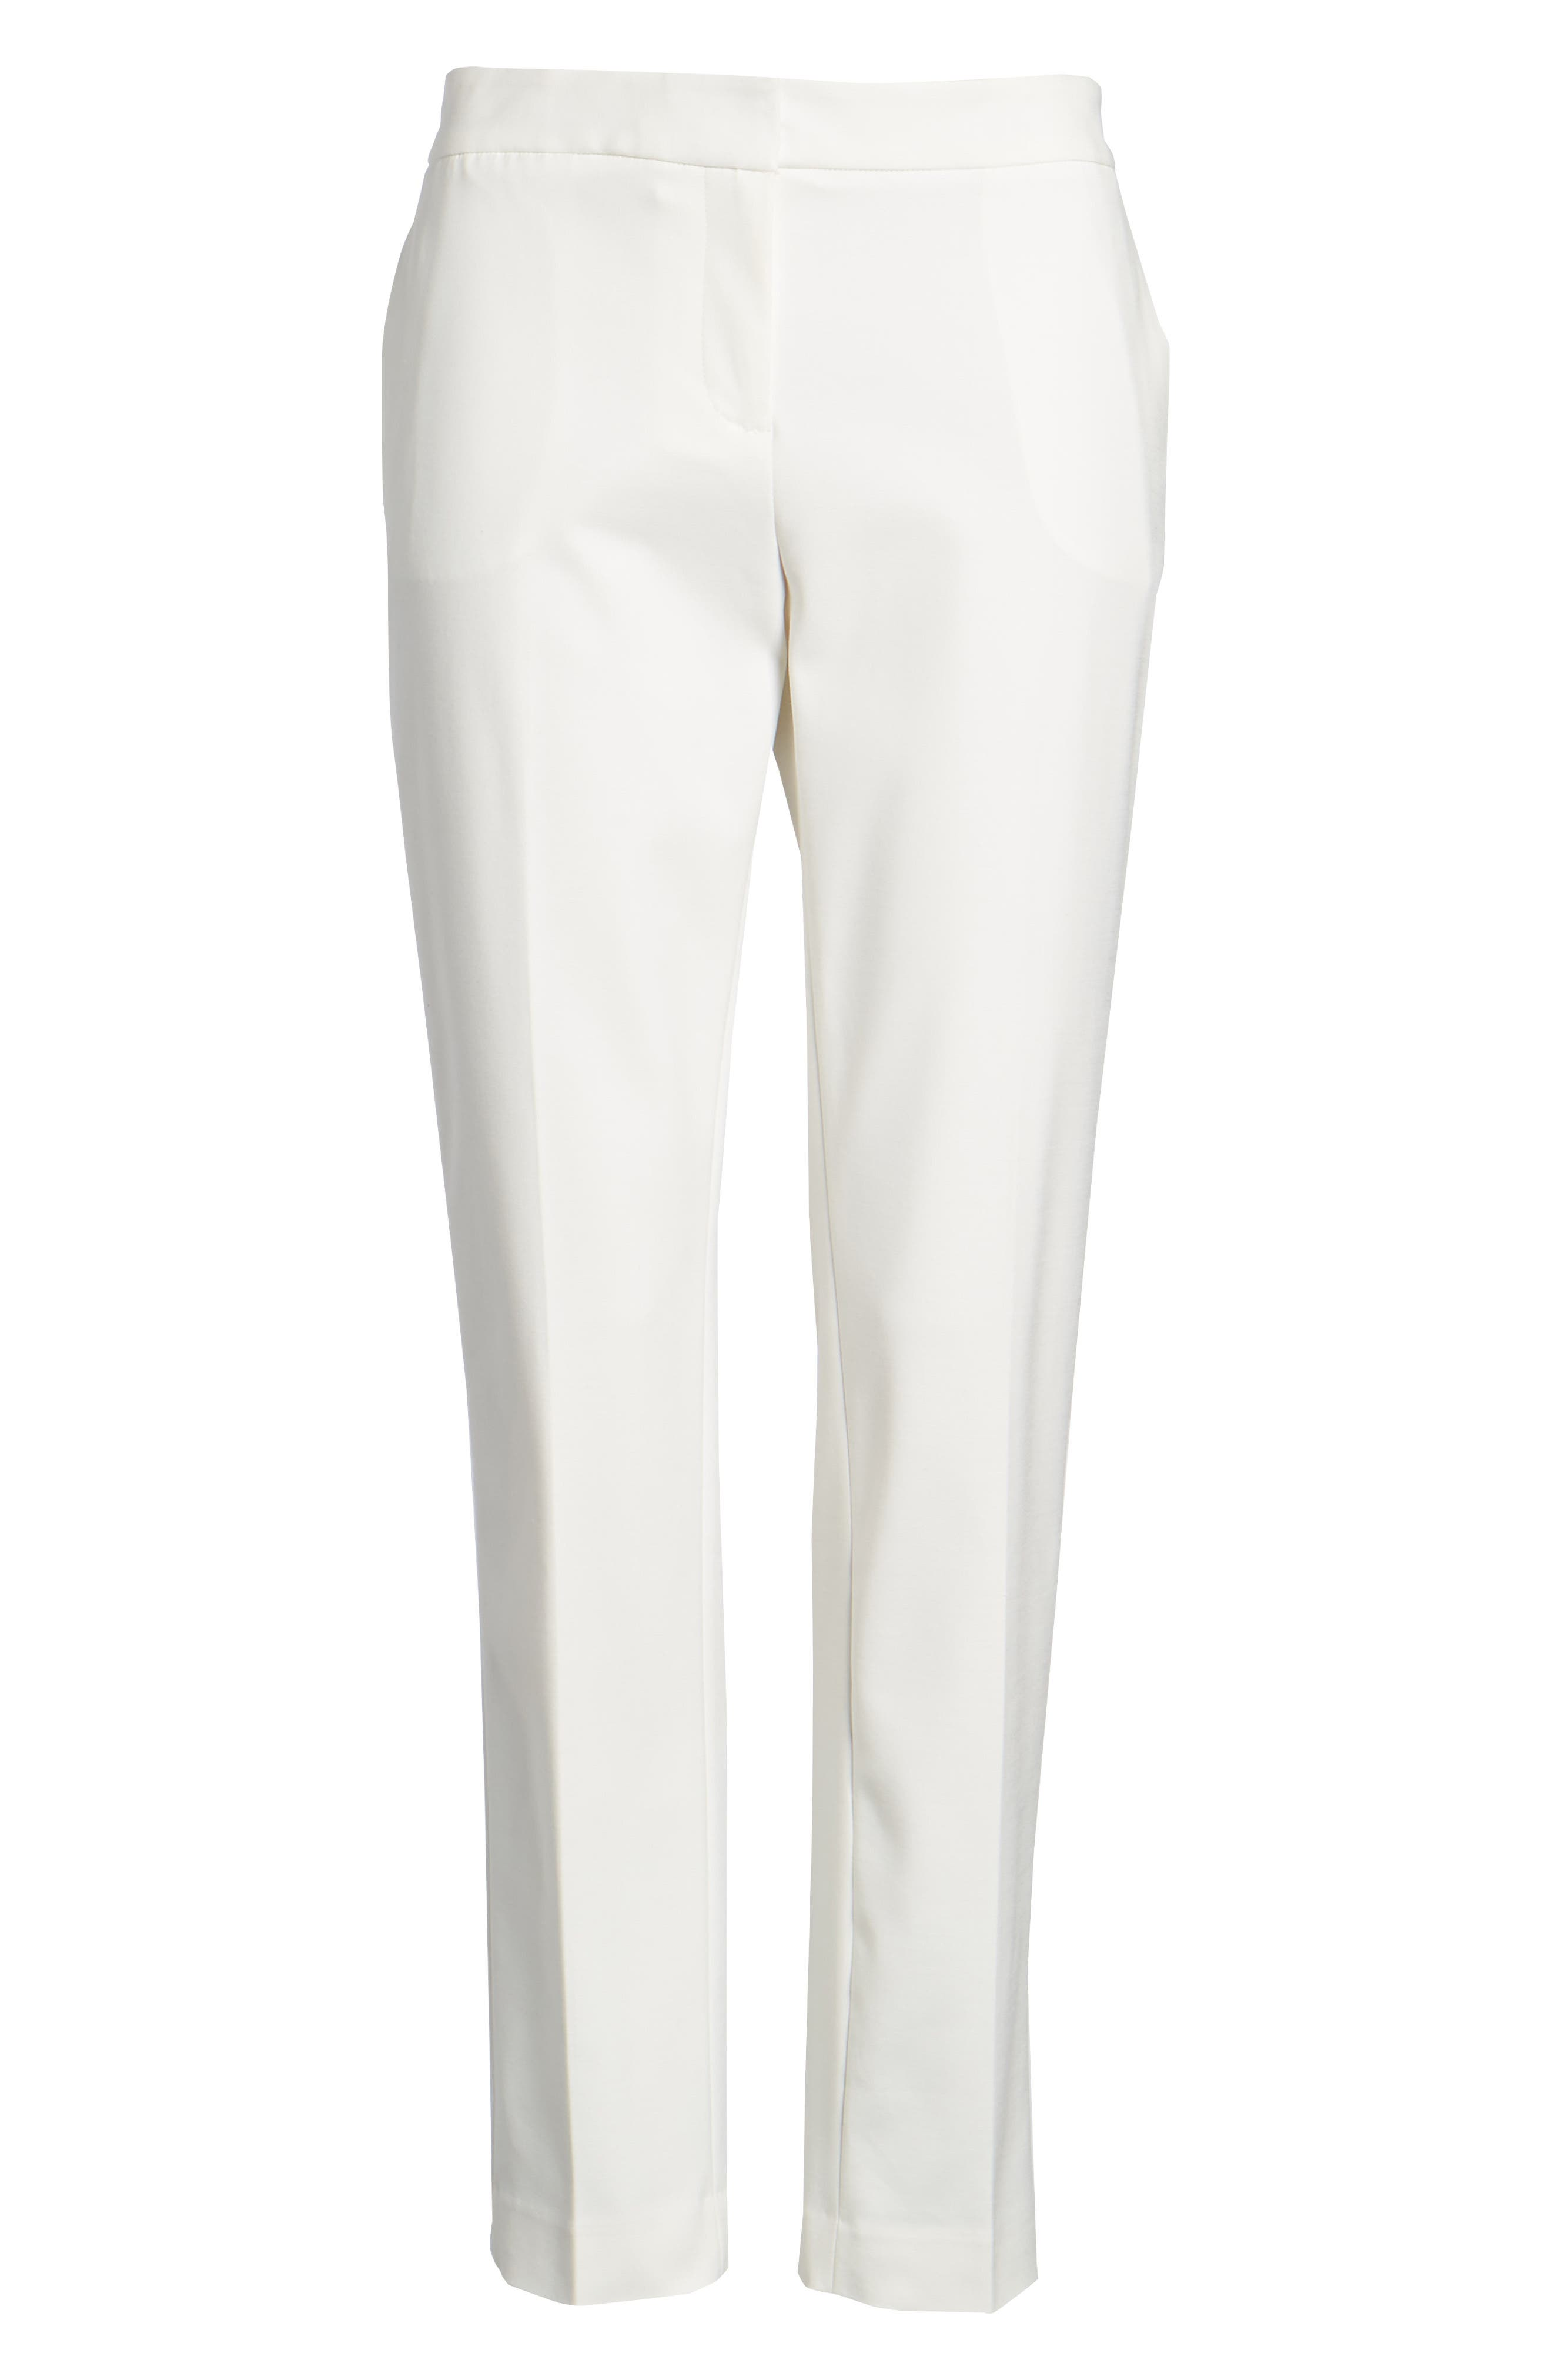 Stretch Twill Skinny Pants,                             Alternate thumbnail 7, color,                             253